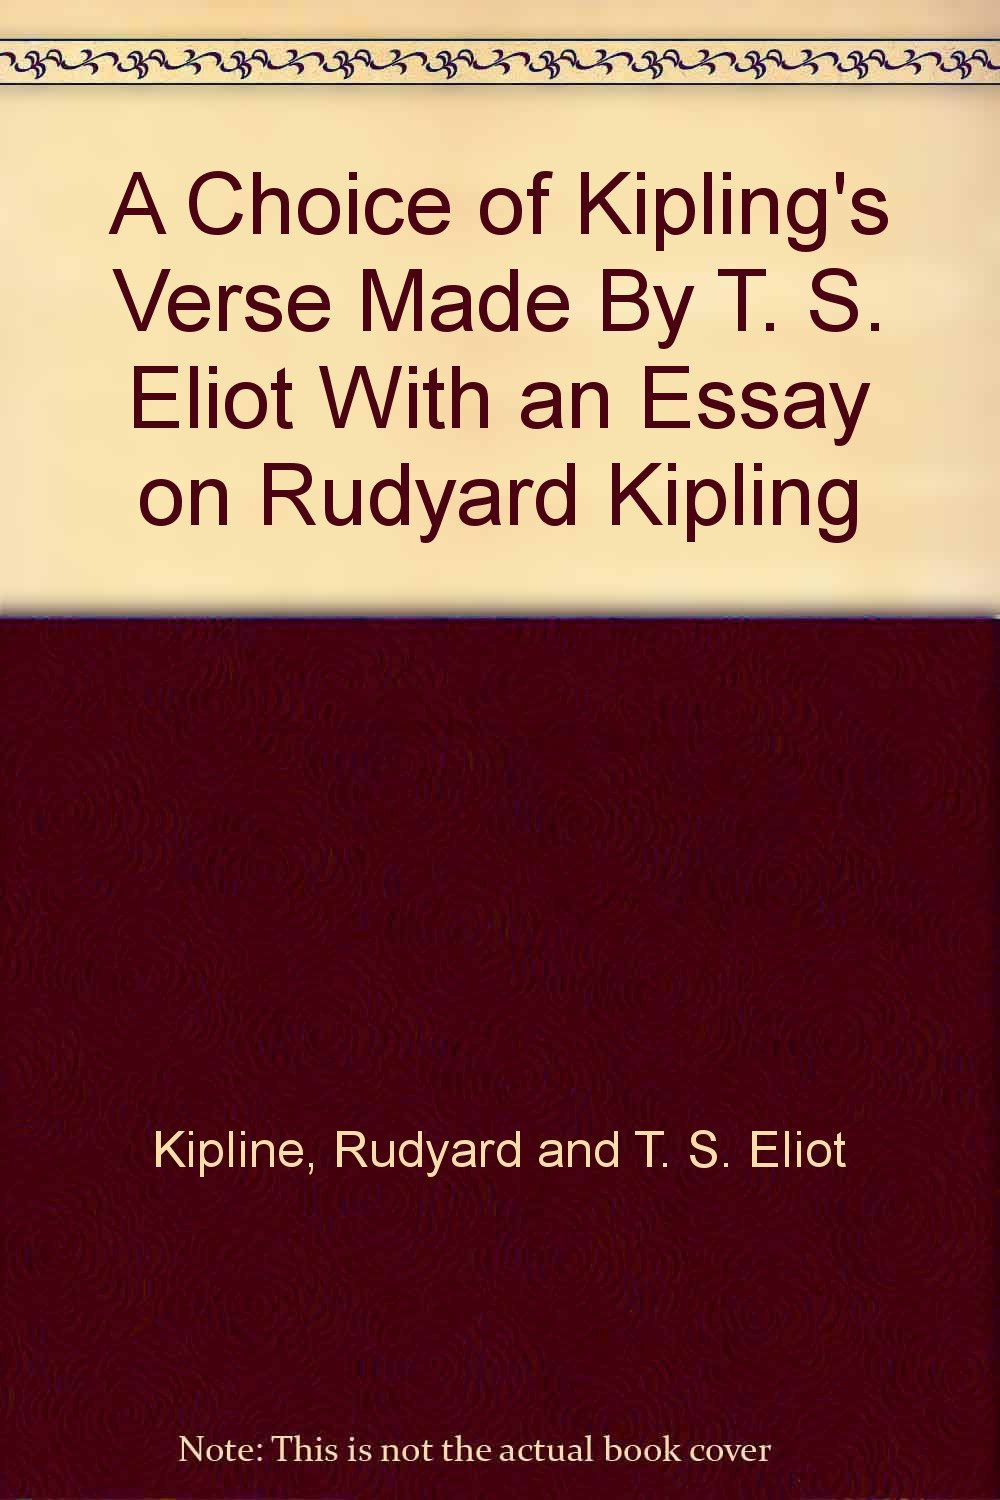 Essay Writing Thesis Statement A Choice Of Kiplings Verse Made By T S Eliot With An Essay On Rudyard  Kipling Rudyard And T S Eliot Kipline Amazoncom Books The Thesis Statement Of An Essay Must Be also High School Essay Examples A Choice Of Kiplings Verse Made By T S Eliot With An Essay On  Argumentative Essay Topics For High School